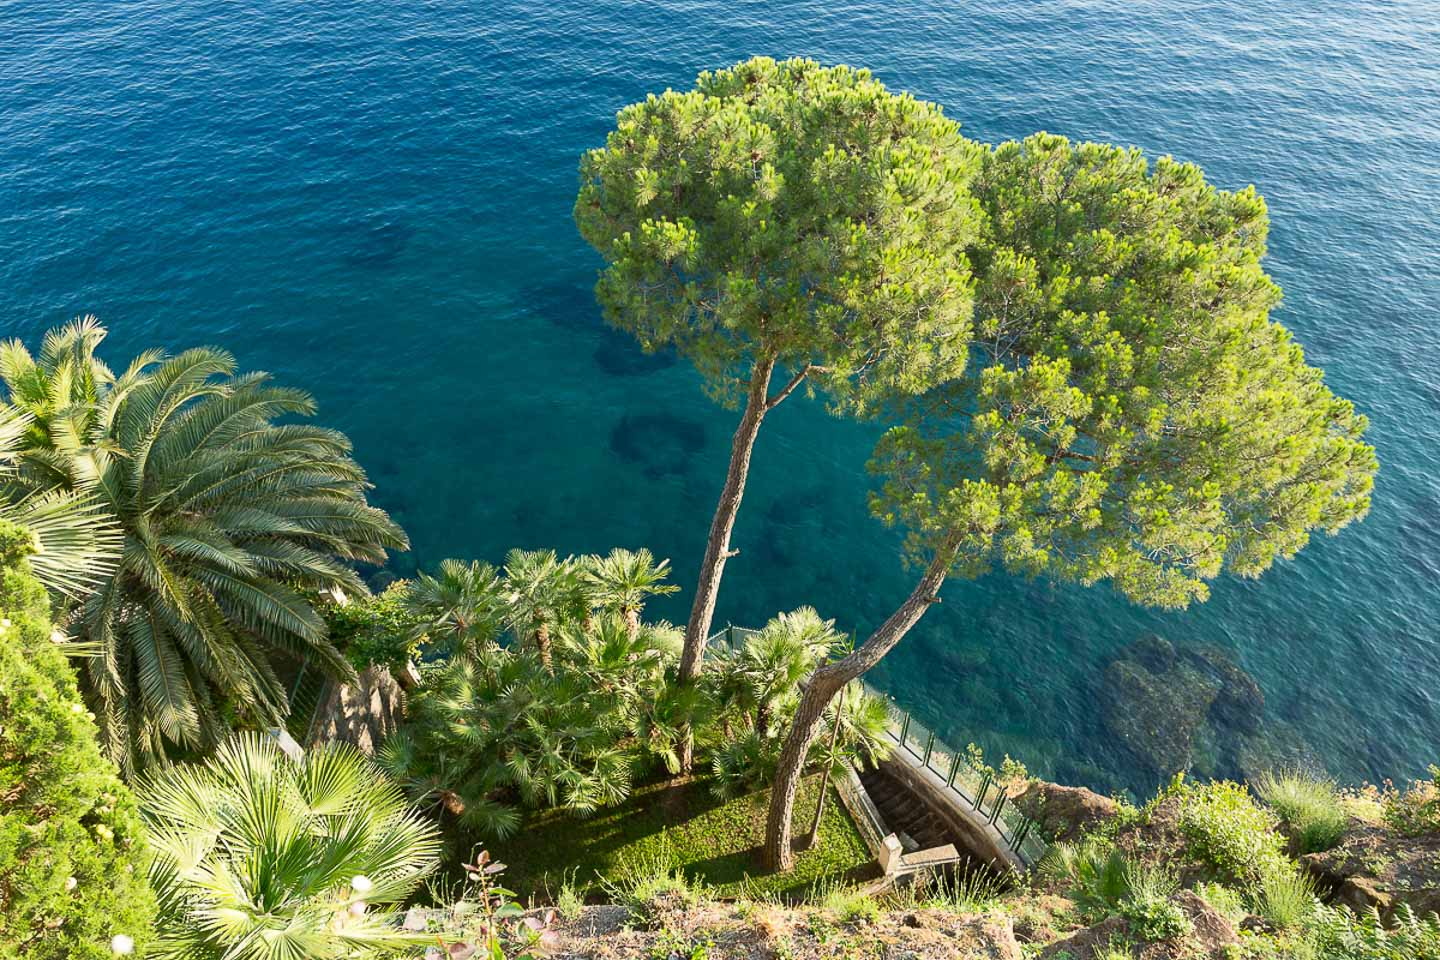 Villa Astor luxury accomodation rental Sorrento Amalfi Coast location italian paradise splendid garden cliff view beach sea direct access water swimming 20 1